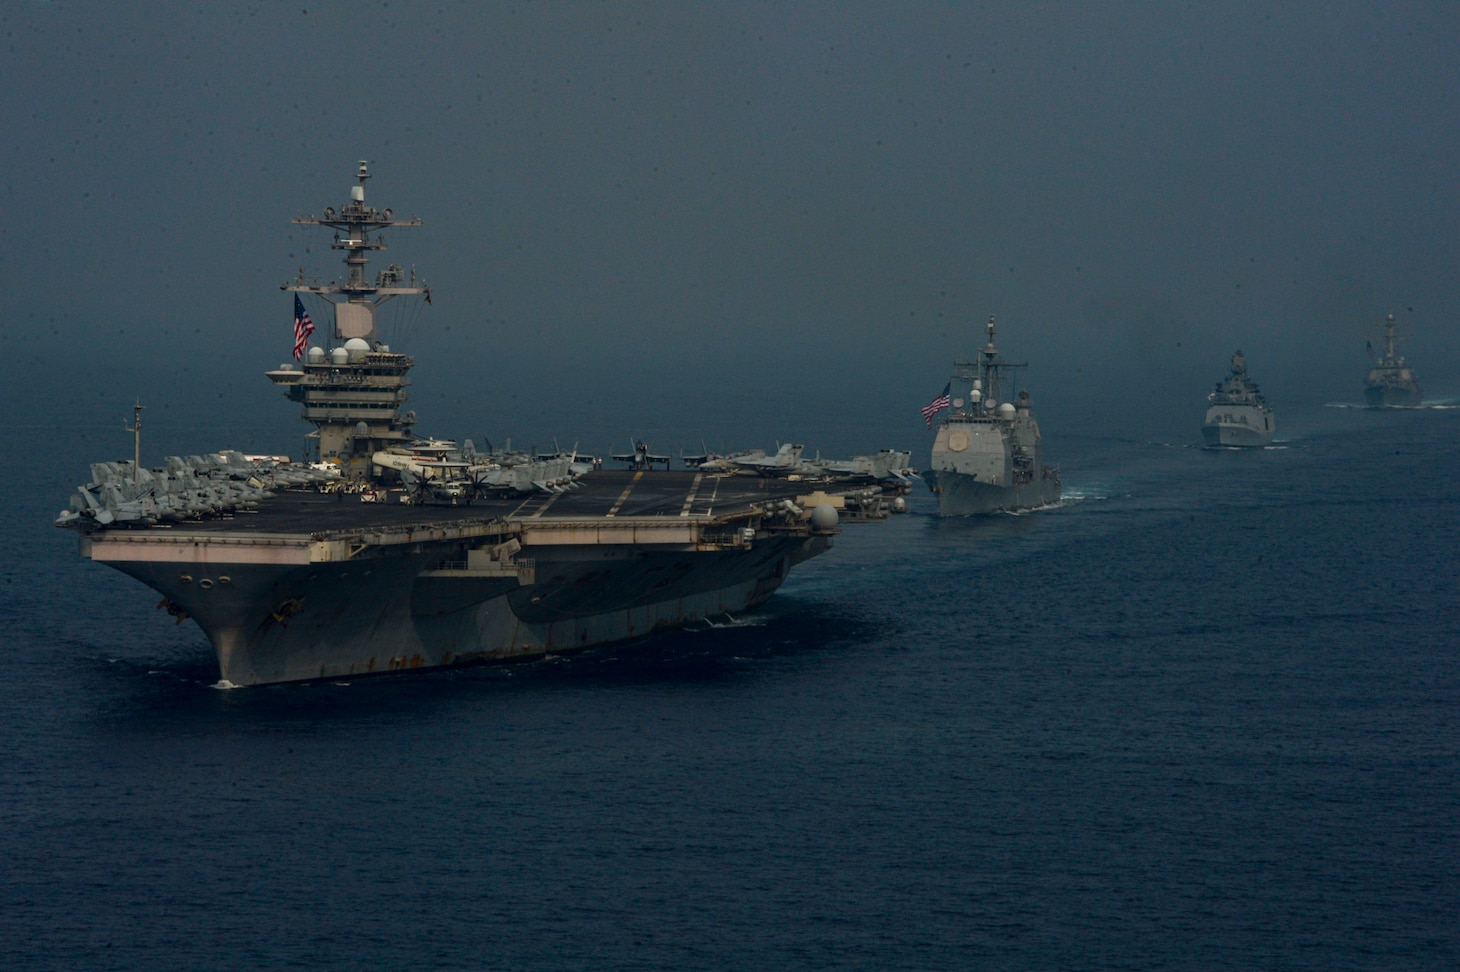 INDIAN OCEAN (March 28, 2021) – The aircraft carrier USS Theodore Roosevelt (CVN 71), front, the Ticonderoga-class guided-missile cruiser USS Bunker Hill (CG 52), center right, the Indian Navy Shivalik-class guided-missile frigate INS Shivalik (F47), right, and the Arleigh Burke-class guided-missile destroyer USS Russell (DDG 59), sail in formation March 28, 2021. The Theodore Roosevelt Carrier Strike Group is on a scheduled deployment to the U.S. 7th Fleet area of operations. As the U.S. Navy's largest forward-deployed fleet, 7th Fleet routinely operates and interacts with 35 maritime nations while conducting missions to preserve and protect a free and open Indo-Pacific Region. (U.S. Navy photo by Mass Communication Specialist Seaman Eduardo A. Torres)